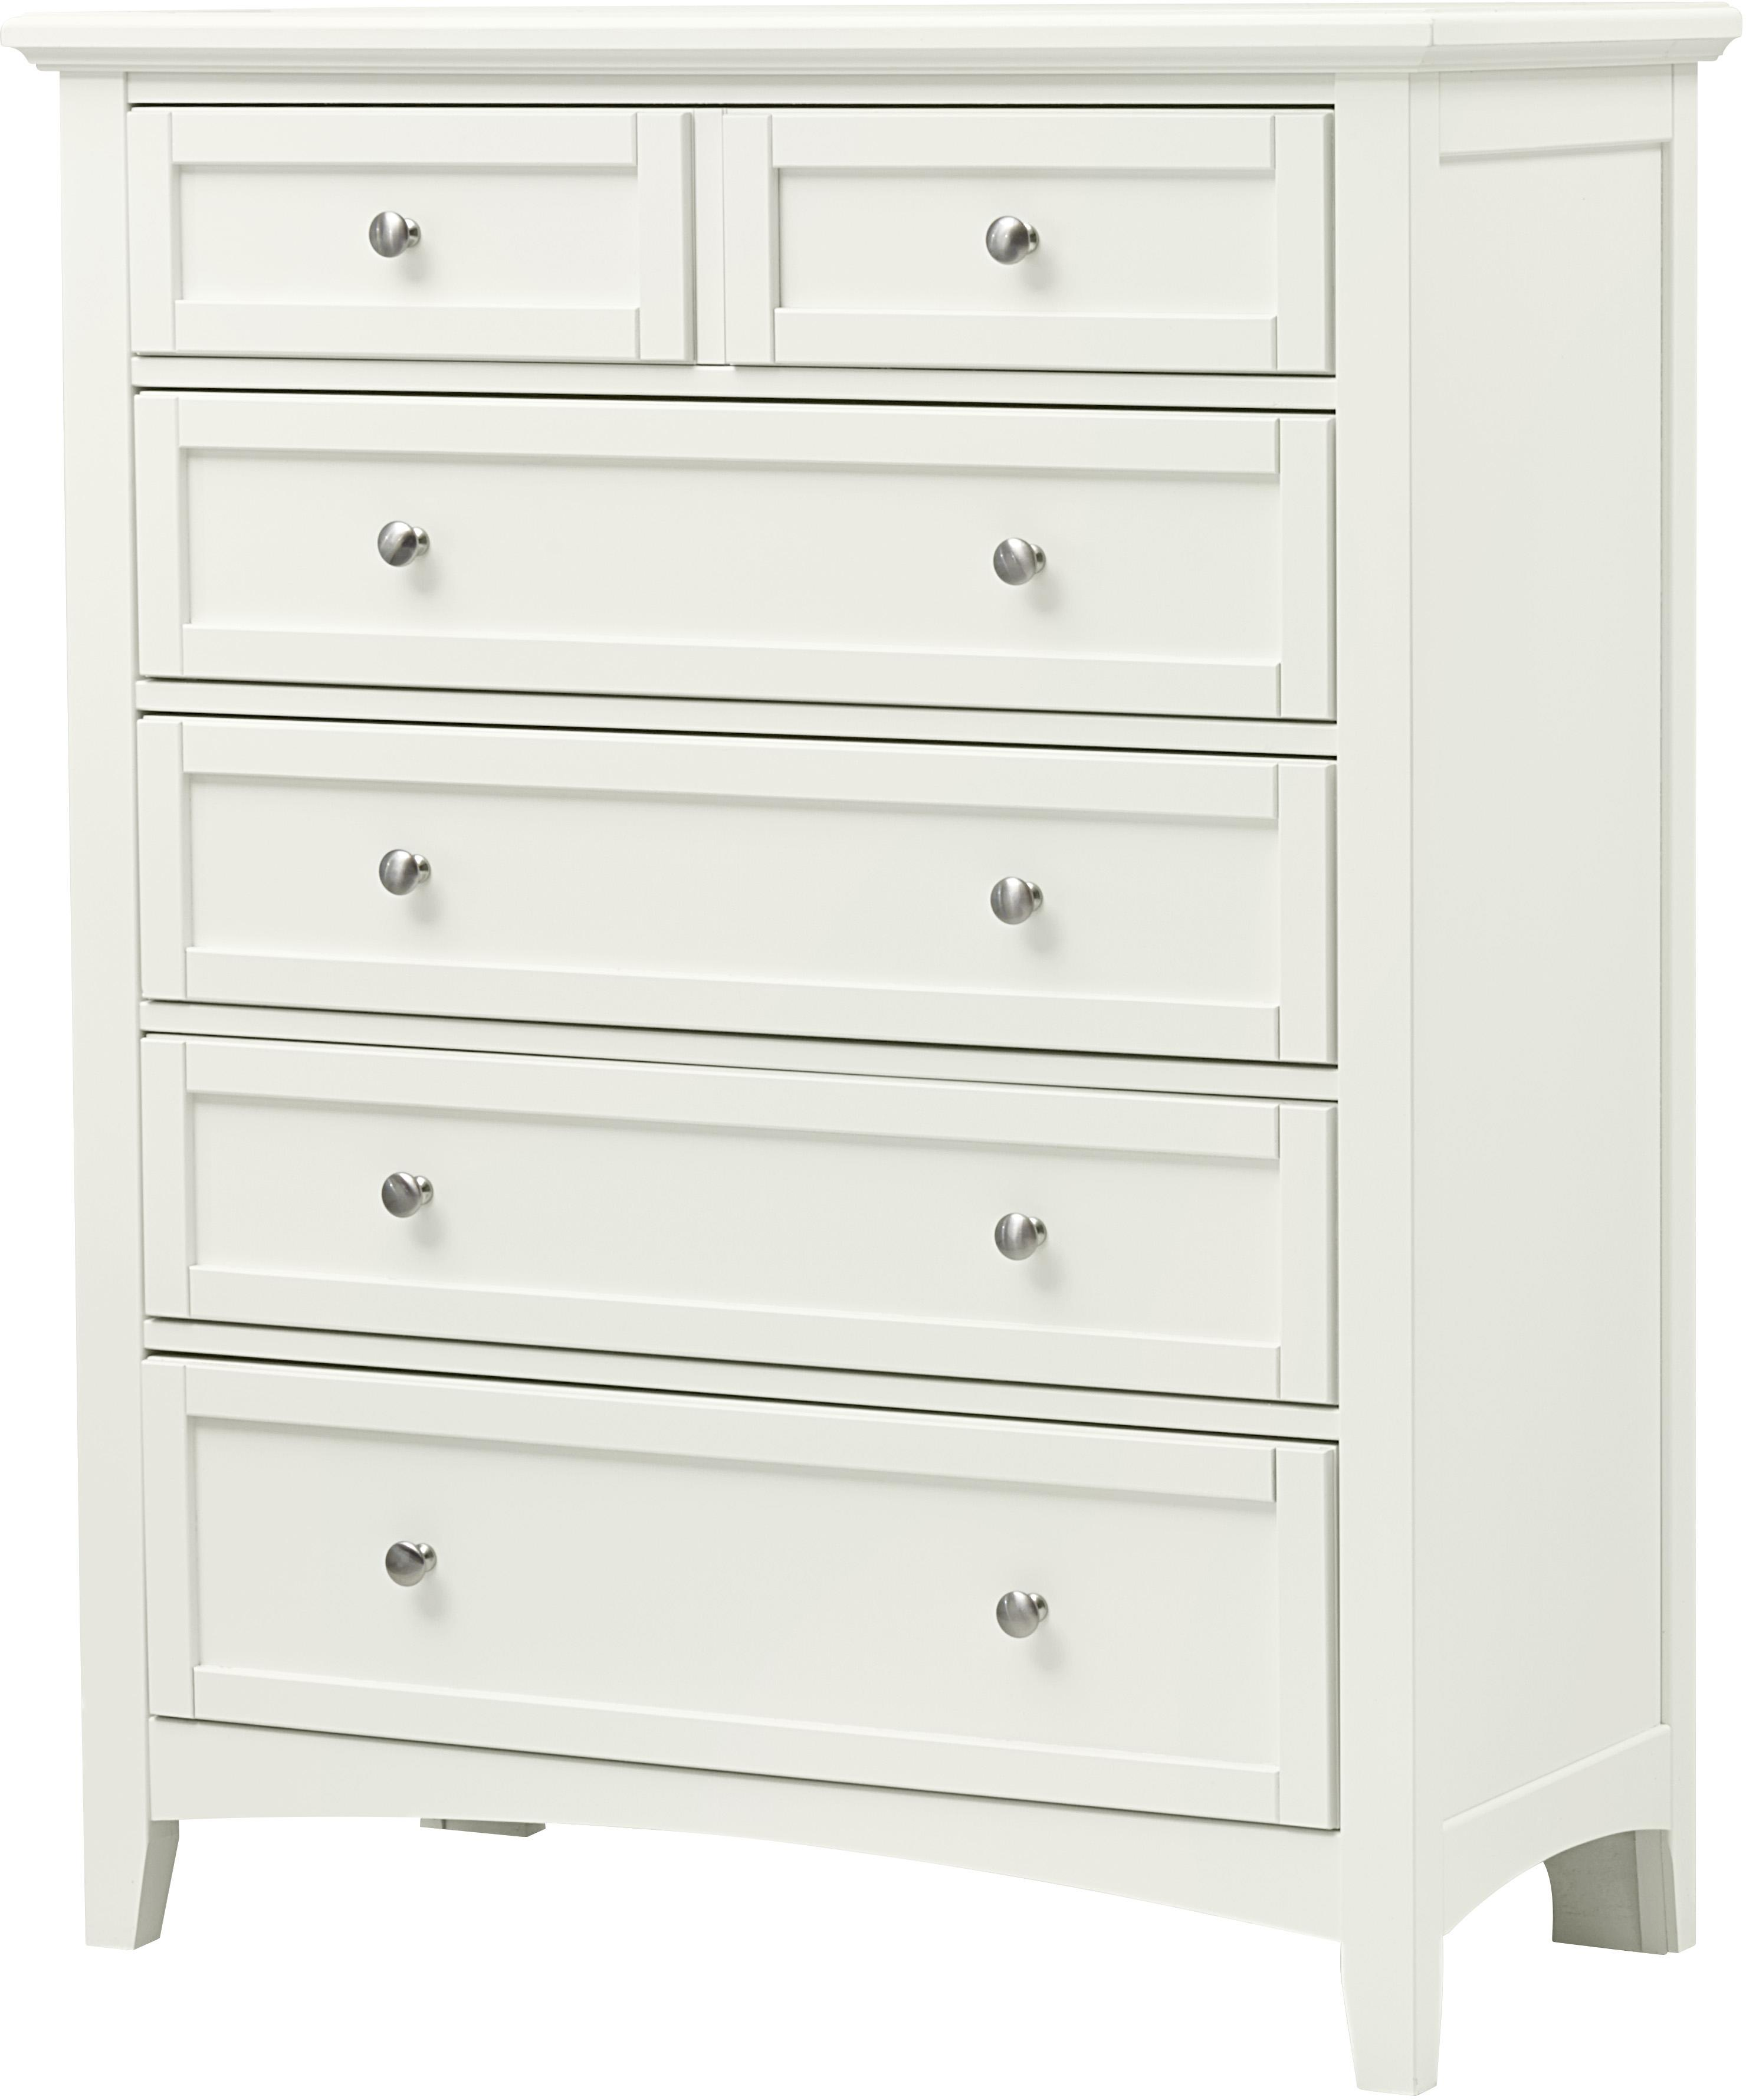 Vaughan Bassett Bonanza 5-Drawer Chest - Item Number: BB29-115